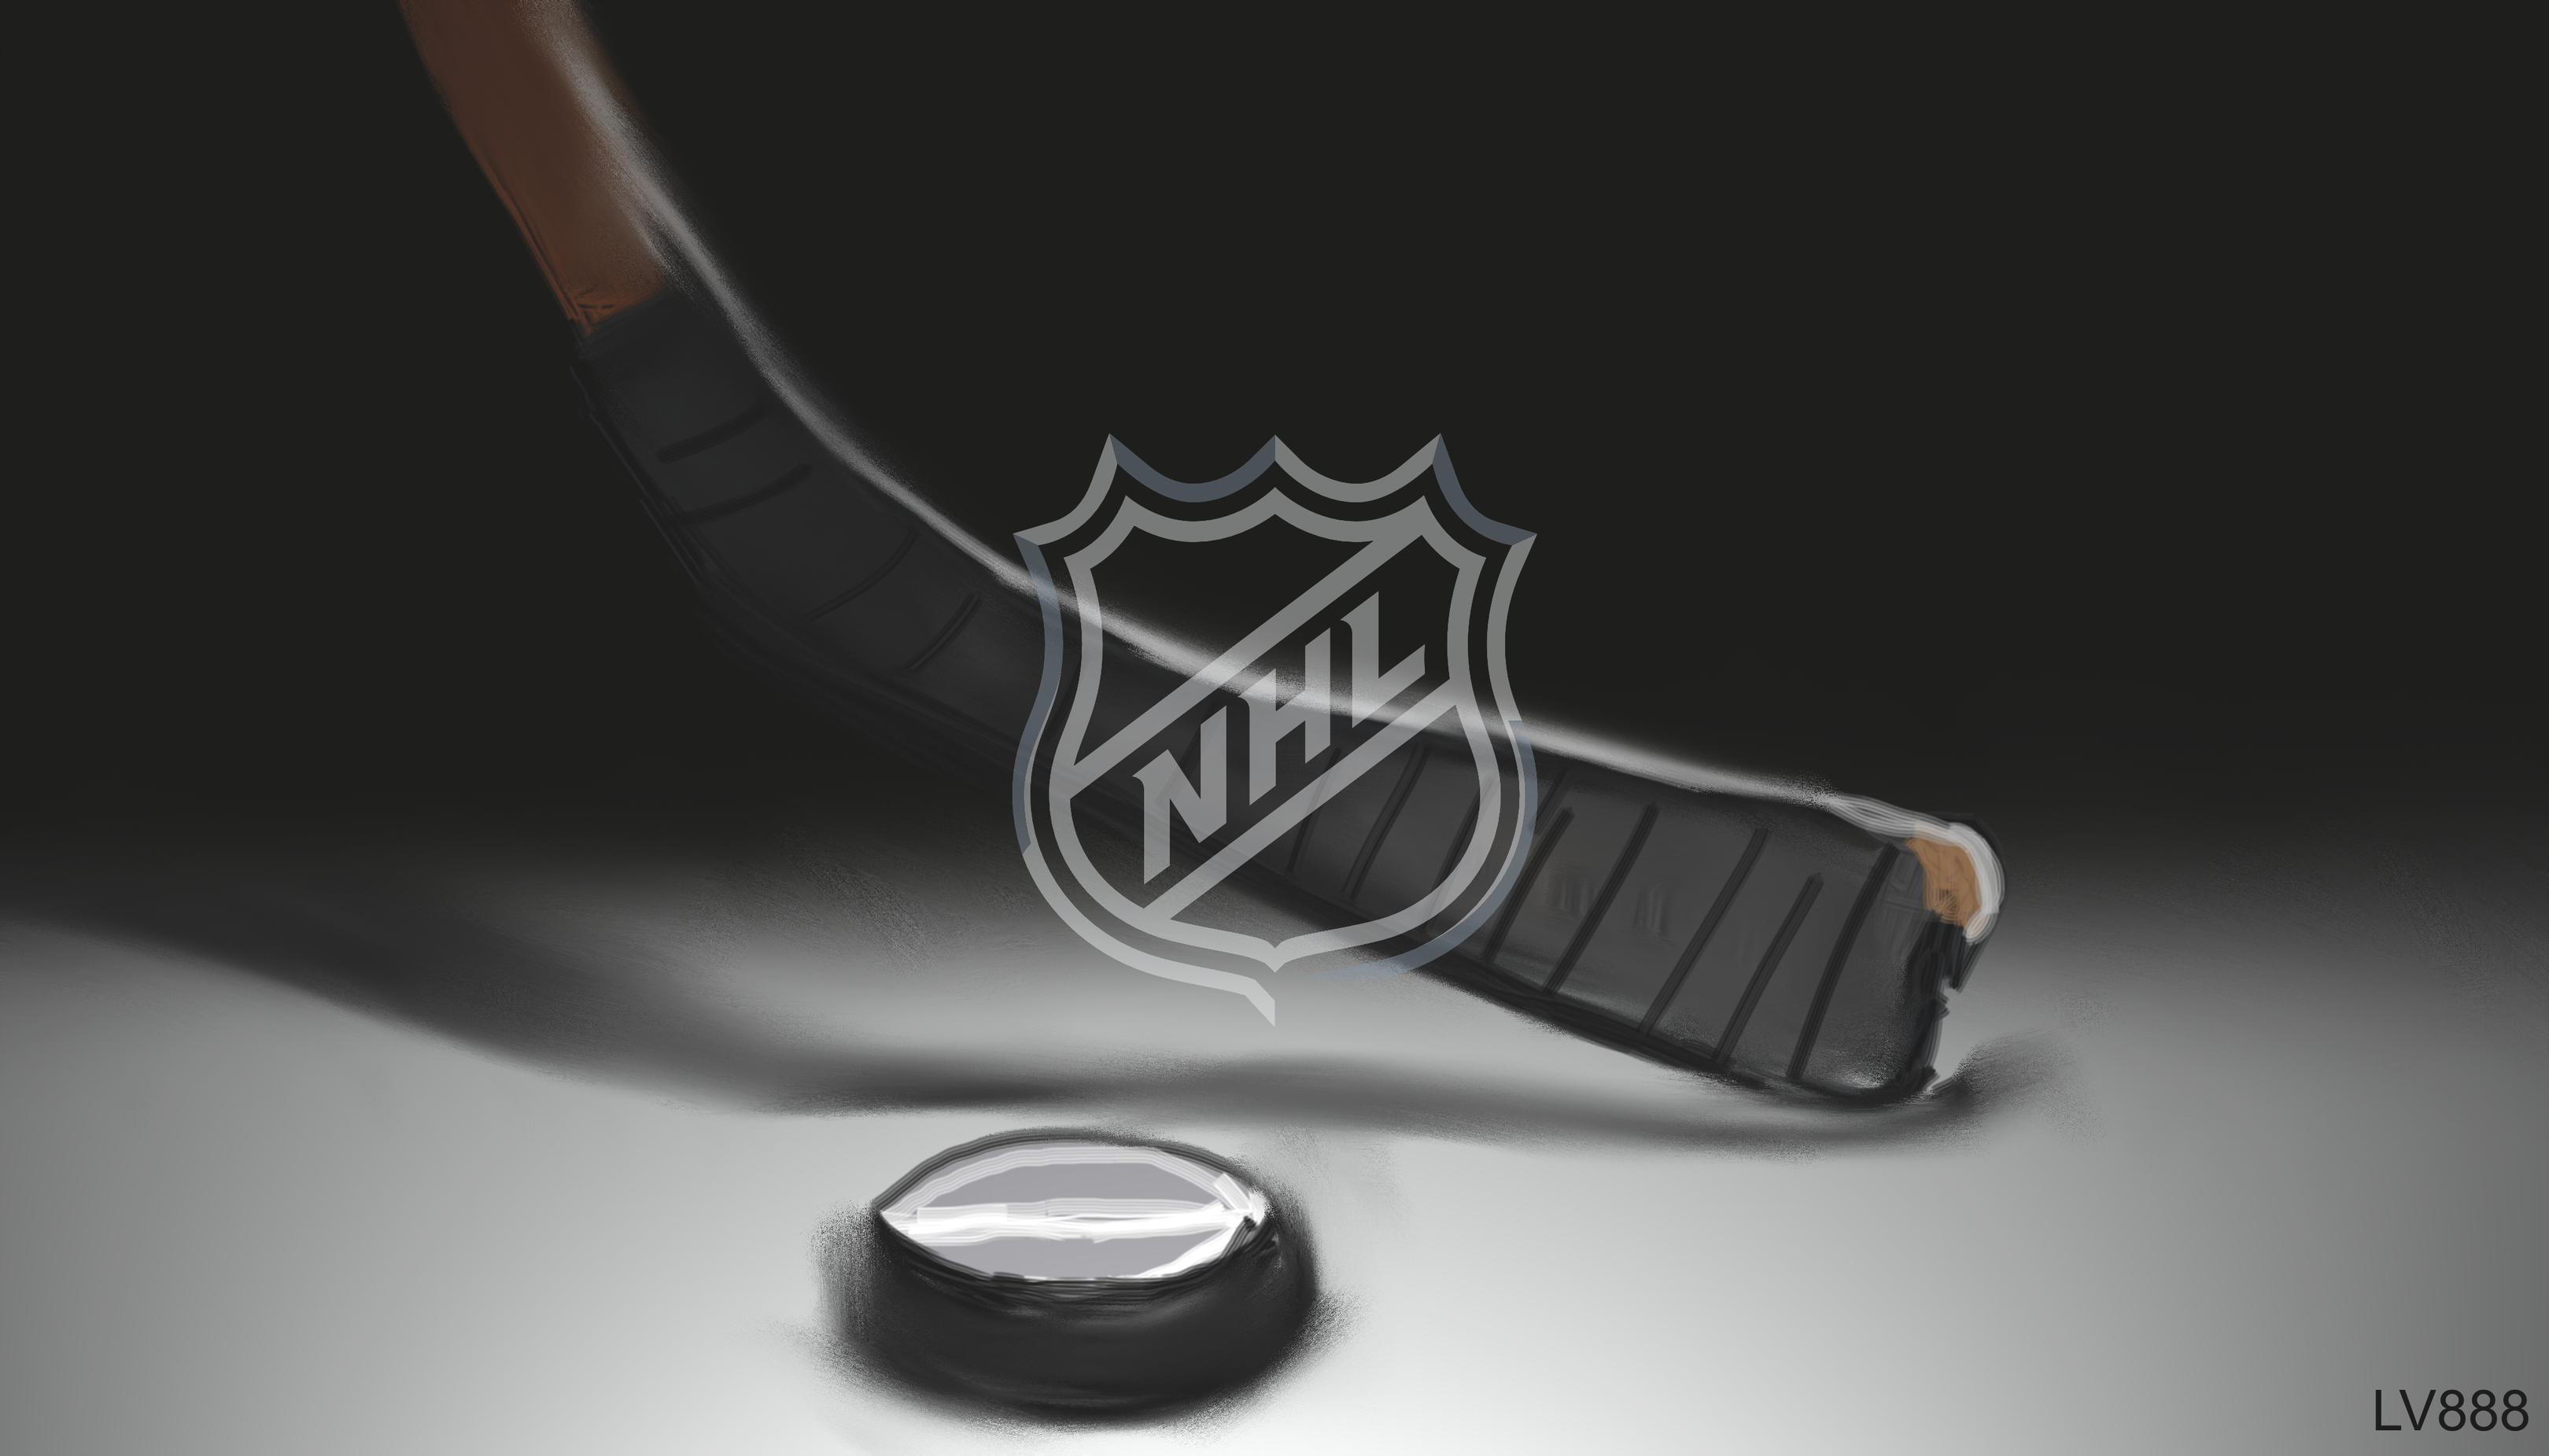 Ice Hockey Passion v881 by lv888